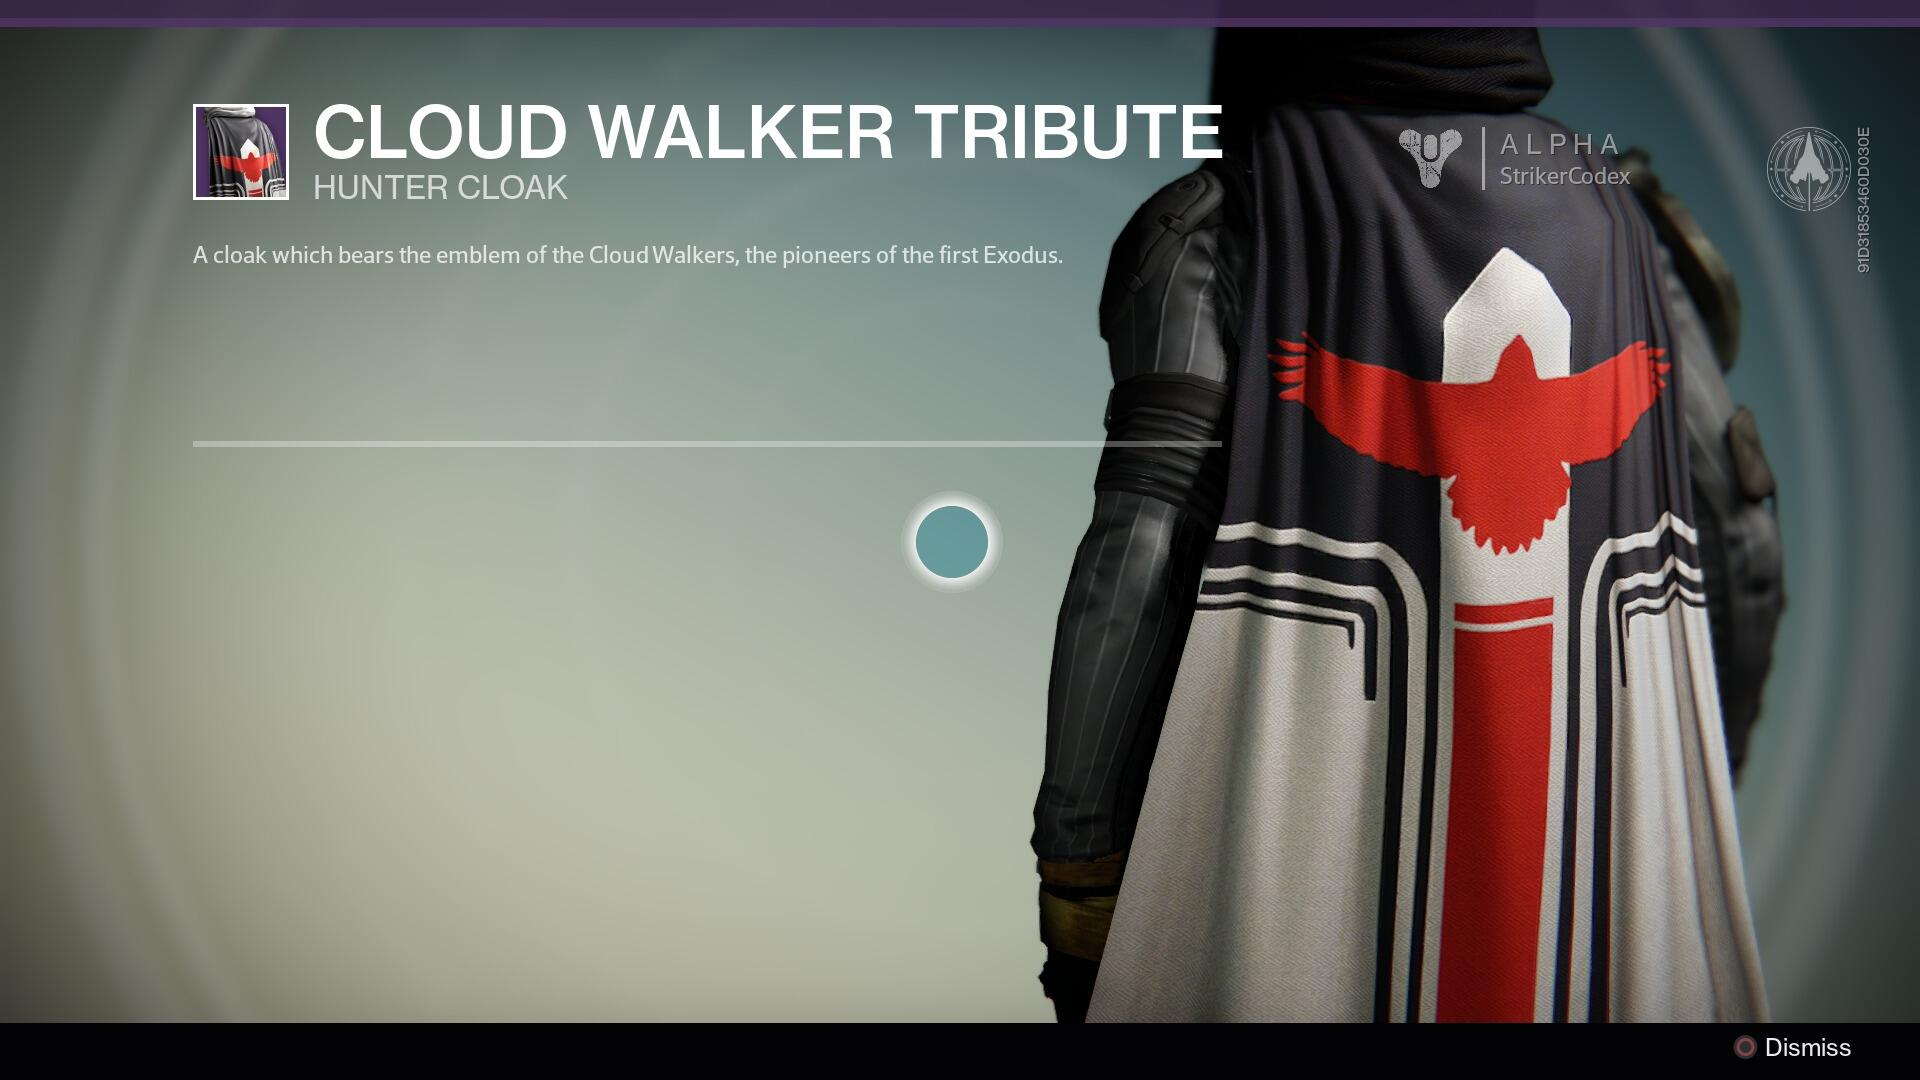 01-Cloud-Walker-Tribute.jpg